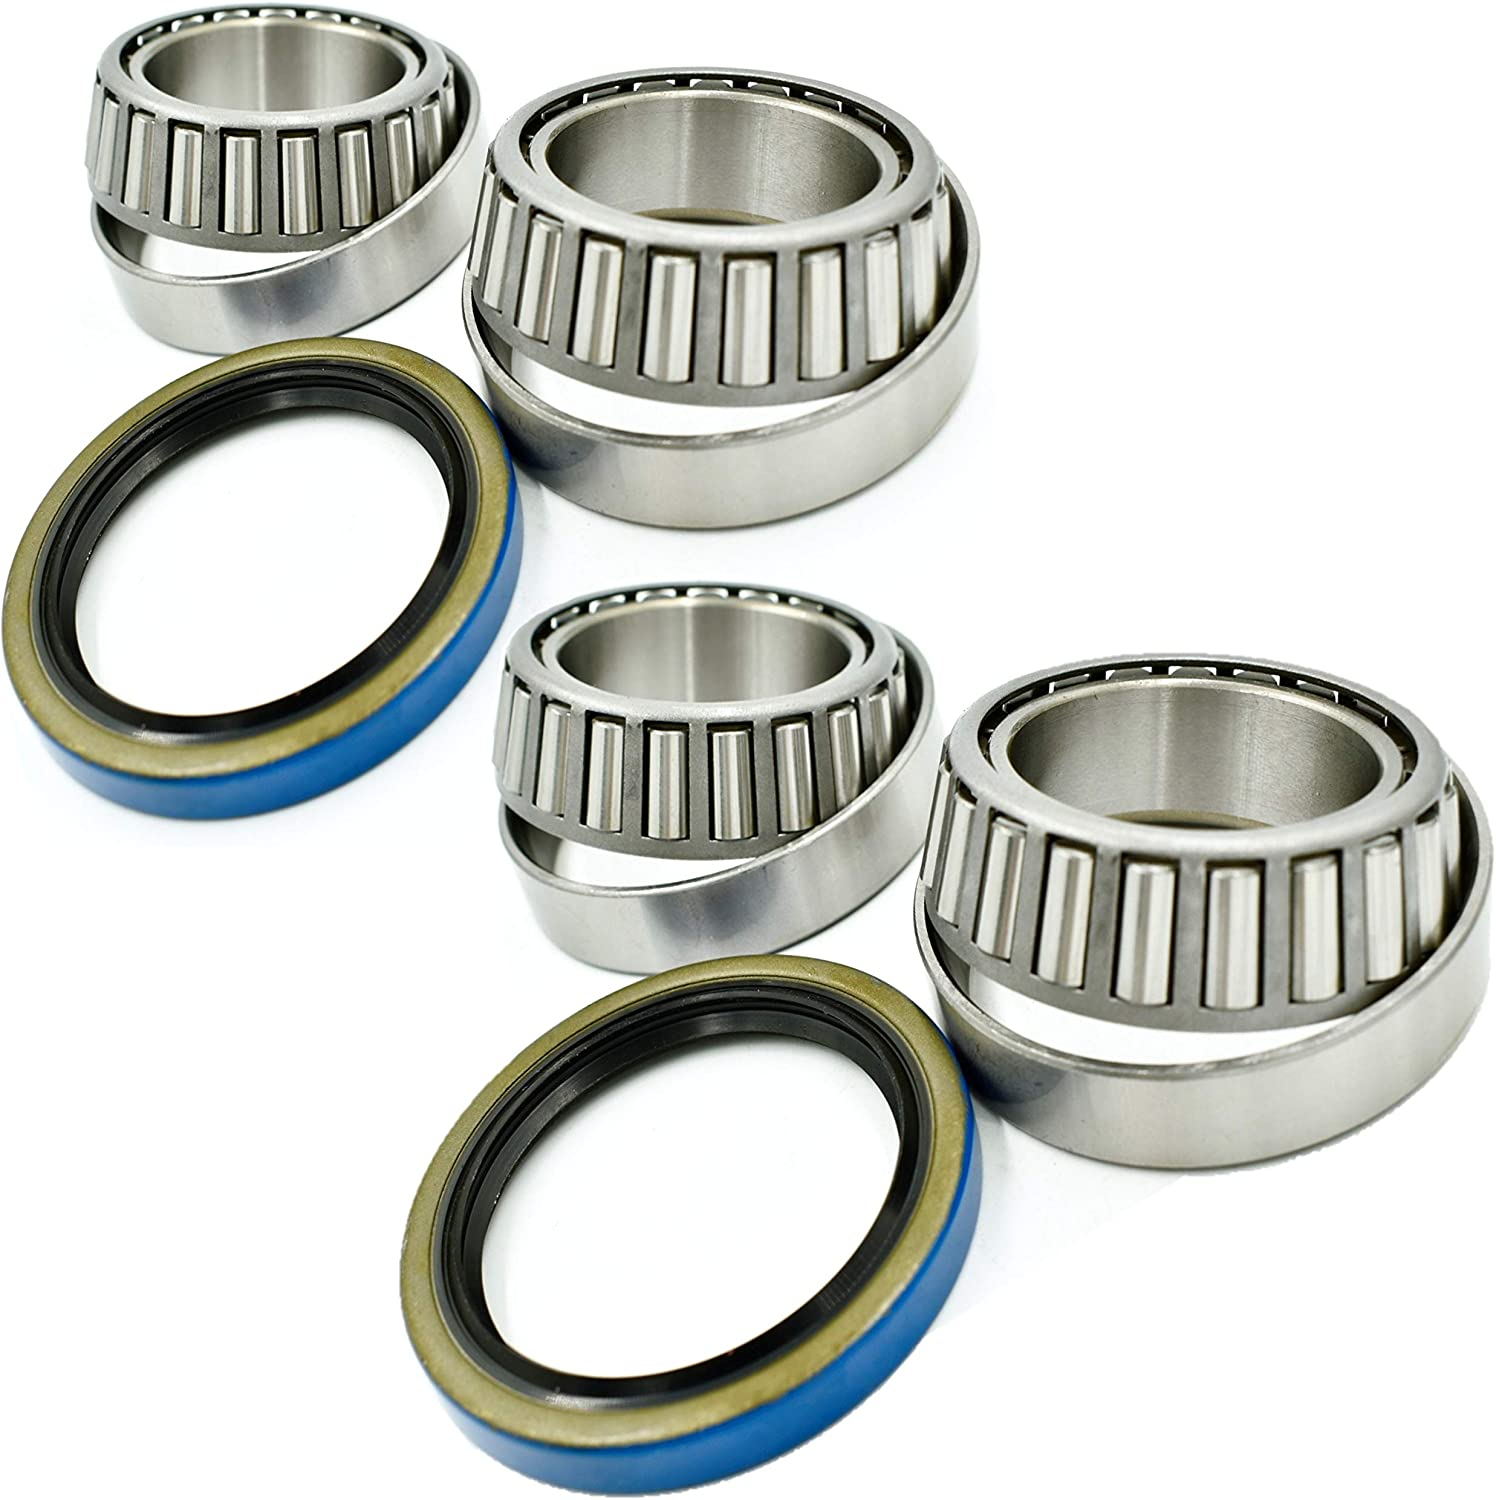 2 Kits HD Switch Axle Hub Replaces Max price 48% OFF Bobcat and Kit Seal Bearing